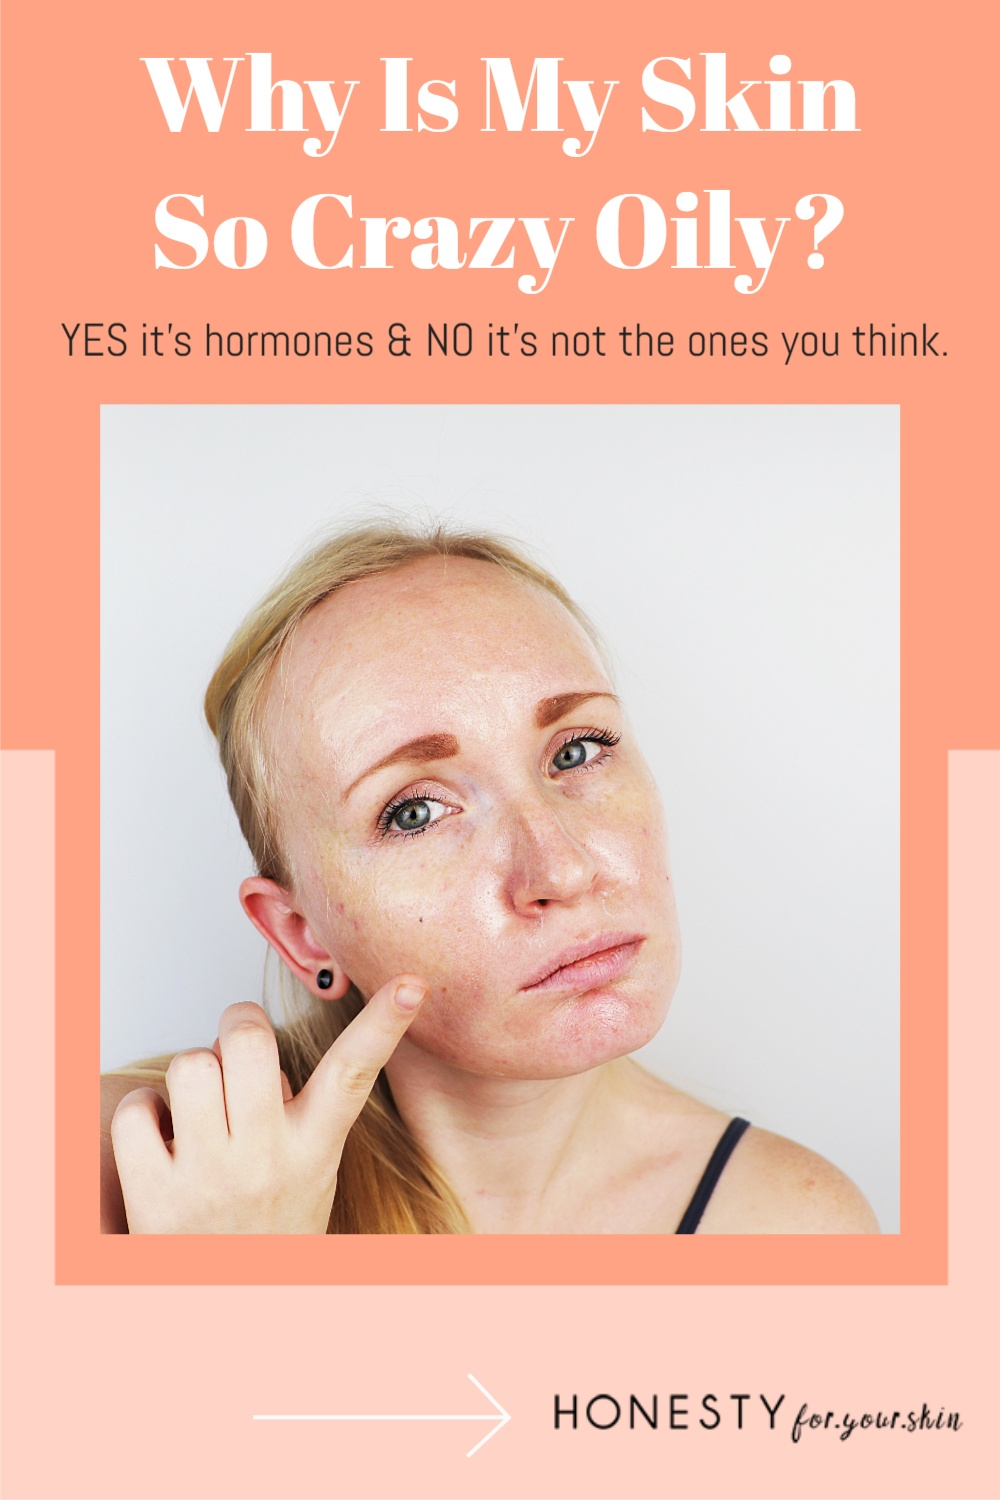 What causes an overproduction of sebum? What causes increased sebum production? Yes it's hormones but not the ones you think.